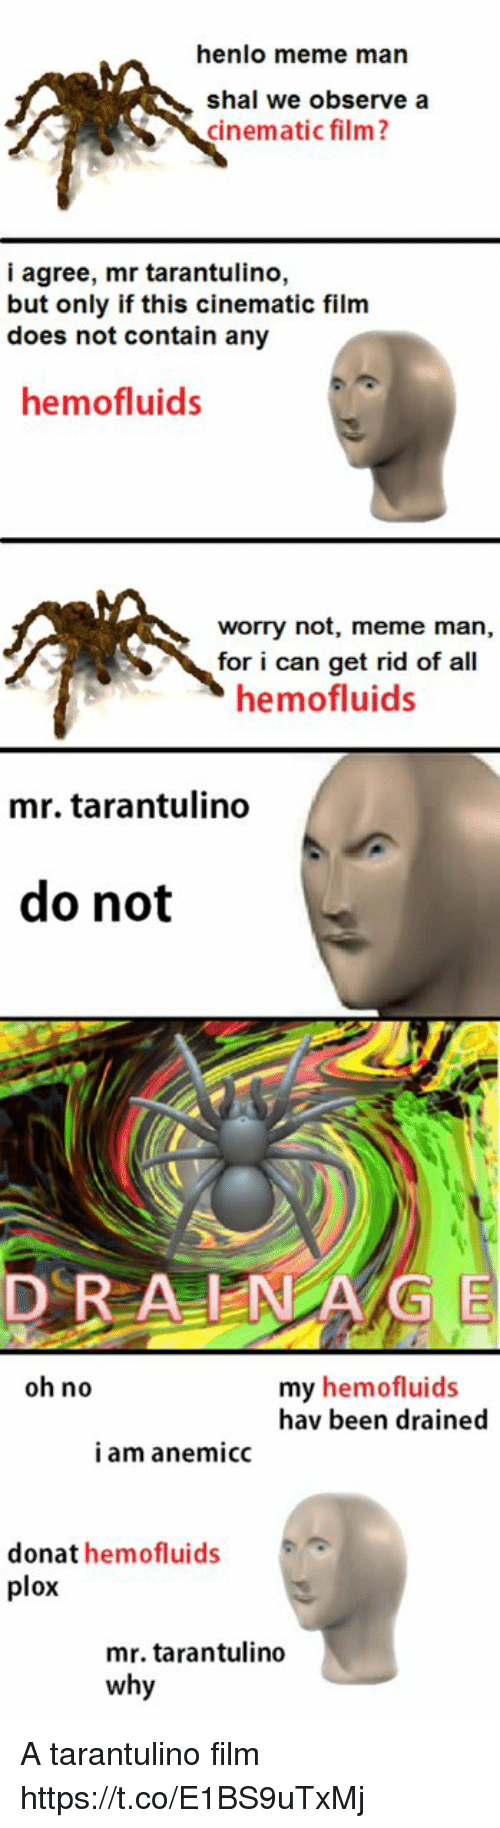 Meme, Film, and Been: henlo meme man  shal we observe a  cinematic film?  i agree, mr tarantulino,  but only if this cinematic film  does not contain any  hemofluids  worry not, meme man,  for i can get rid of all  hemofluids  mr. tarantulino  do not  DRA NG E  oh no  my hemofluids  hav been drained  i am anemicc  donat hemofluids  plox  mr. tarantulino  why A tarantulino film https://t.co/E1BS9uTxMj